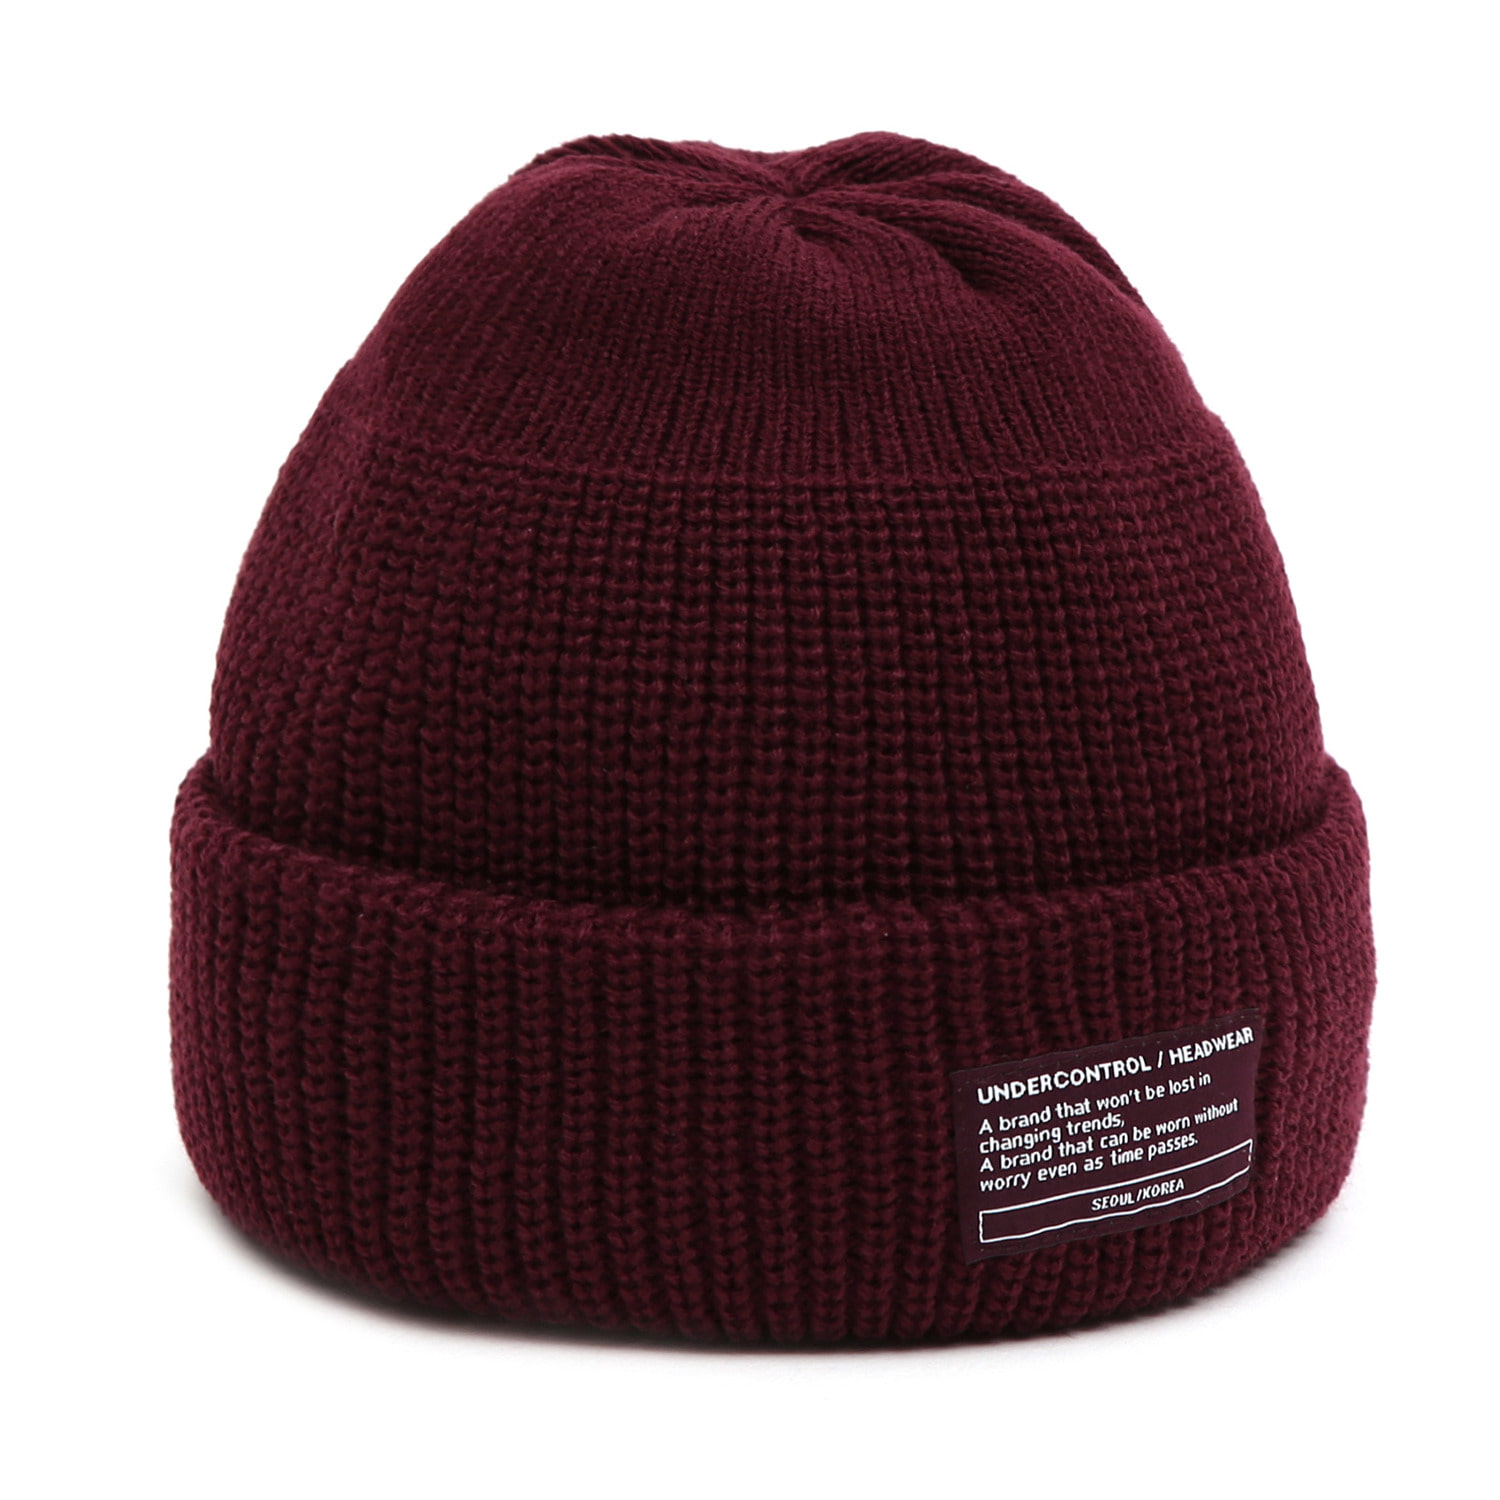 BEANIE / MONK FIT / WINE